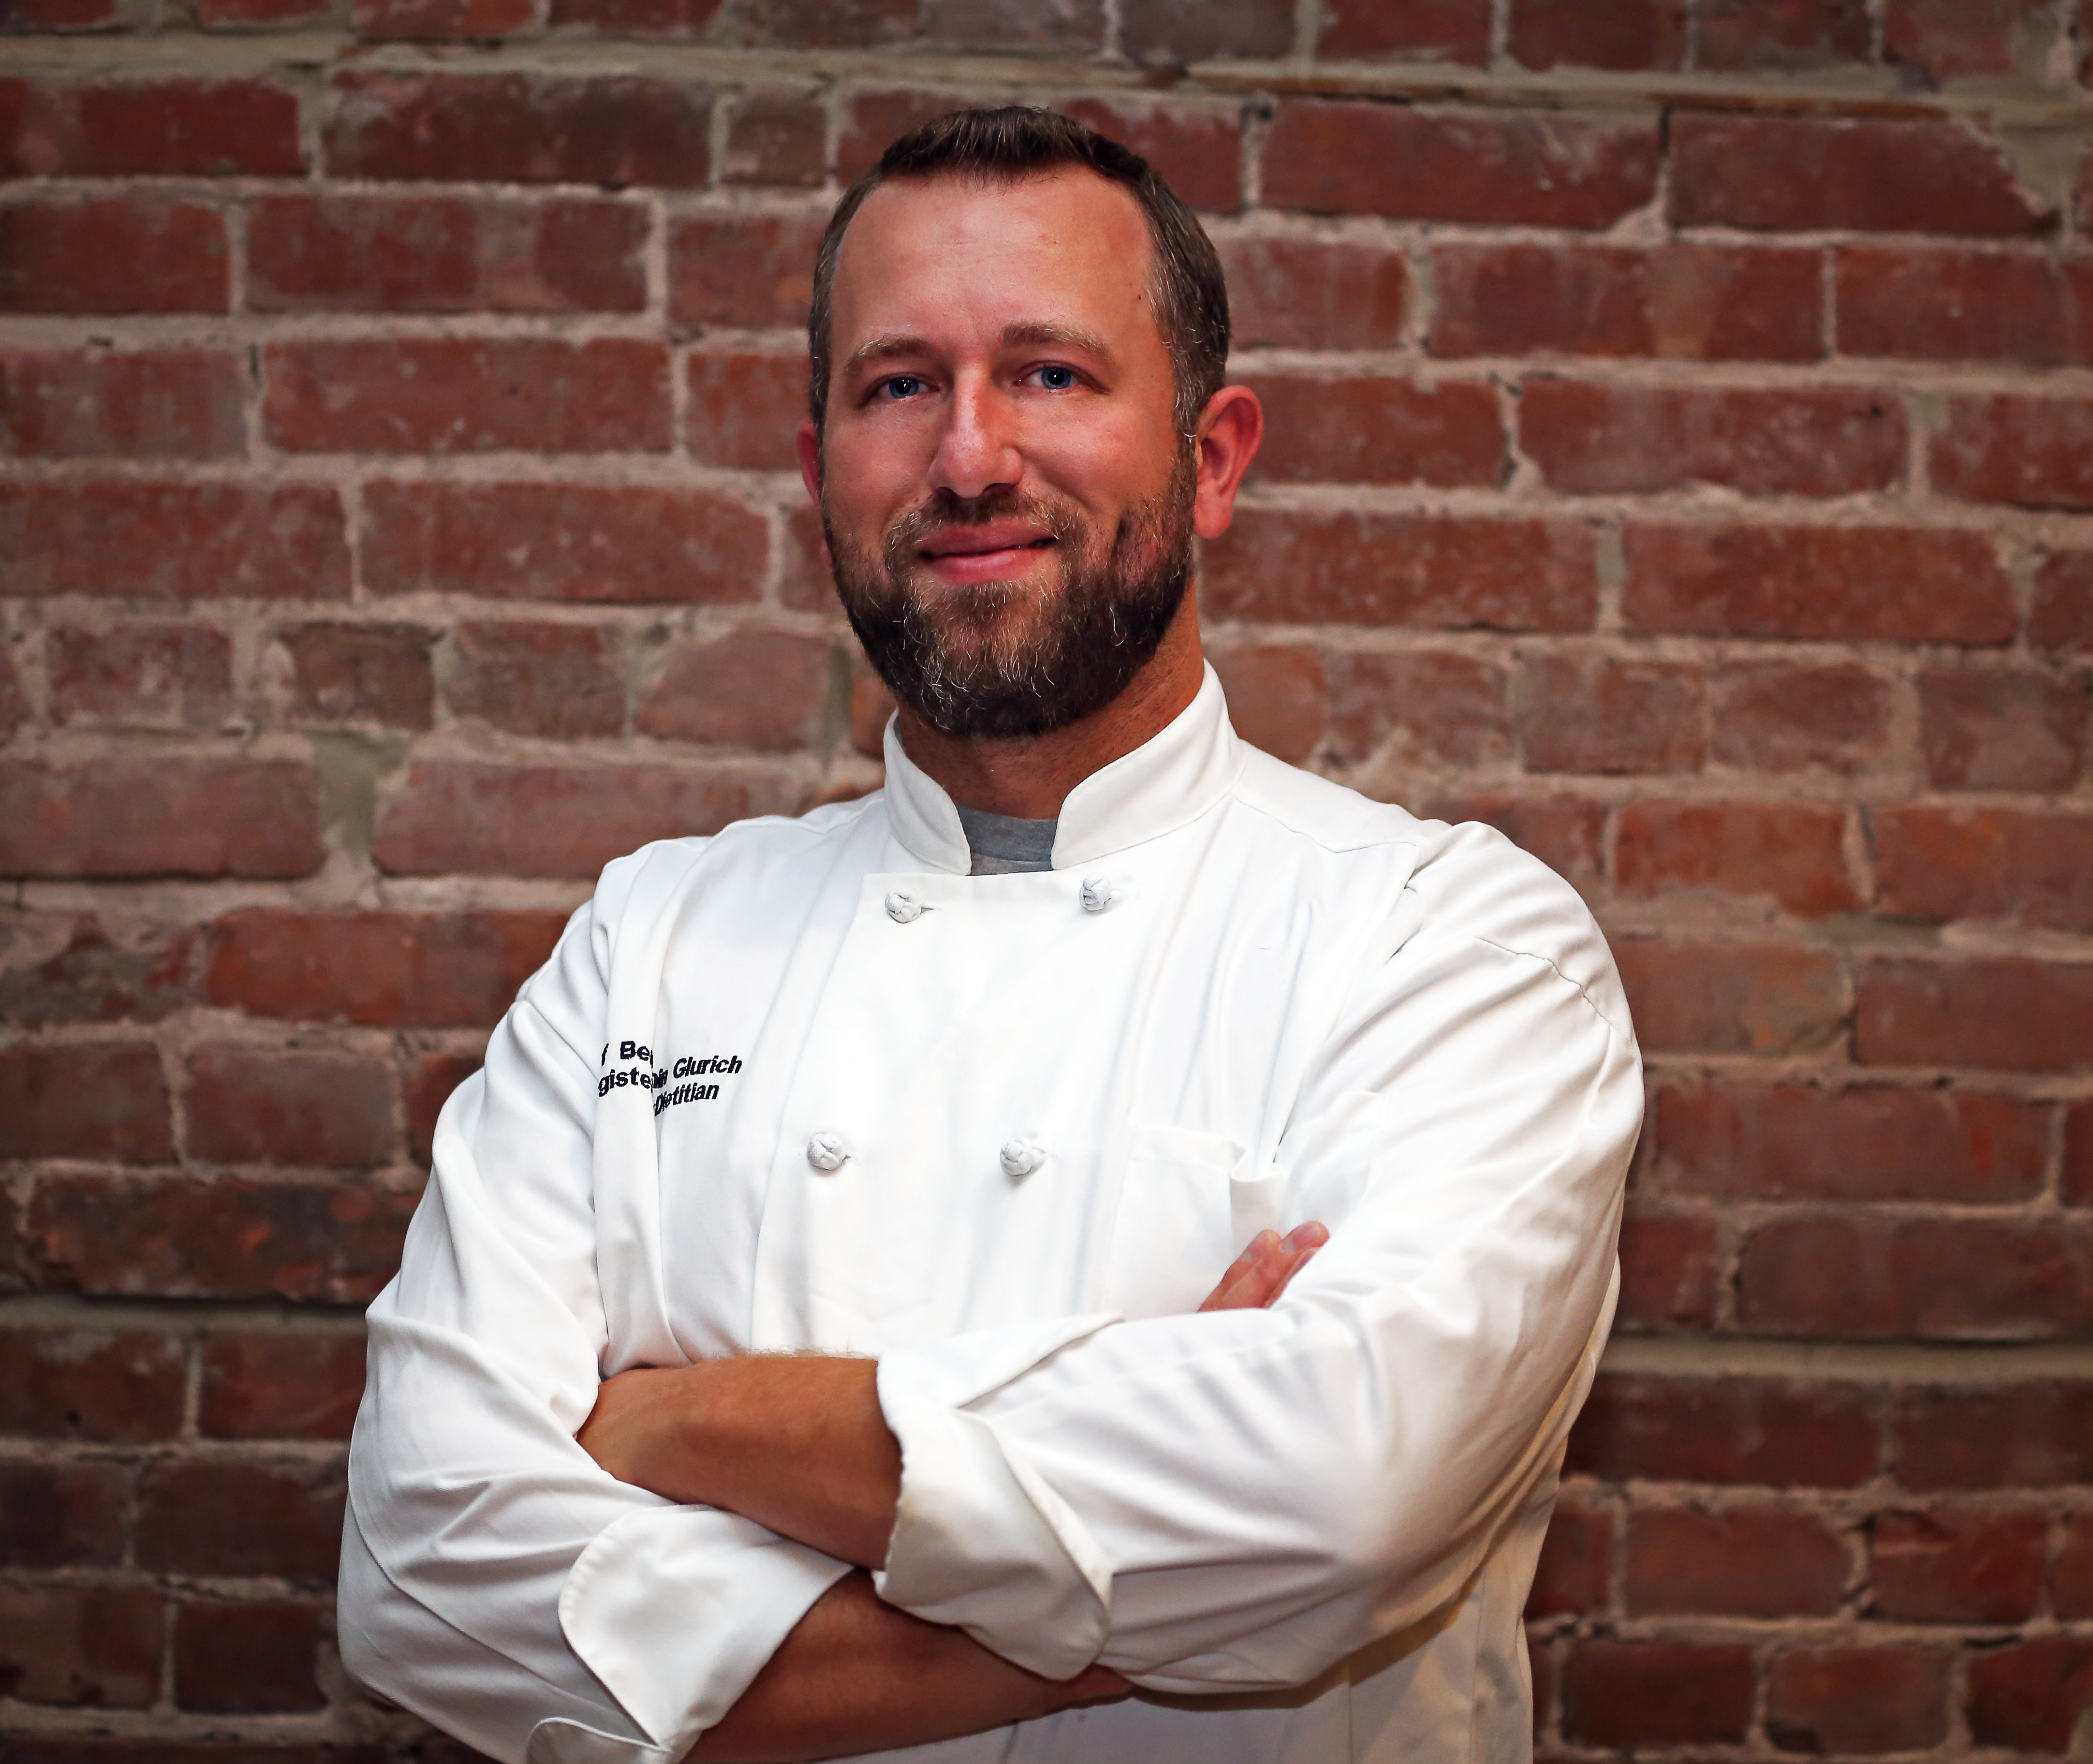 'Even dietitians have trouble sometimes,' says Trocaire adjunct culinary professor Benjamin Glurich, who will teach a new healthy cooking class series starting Saturday.